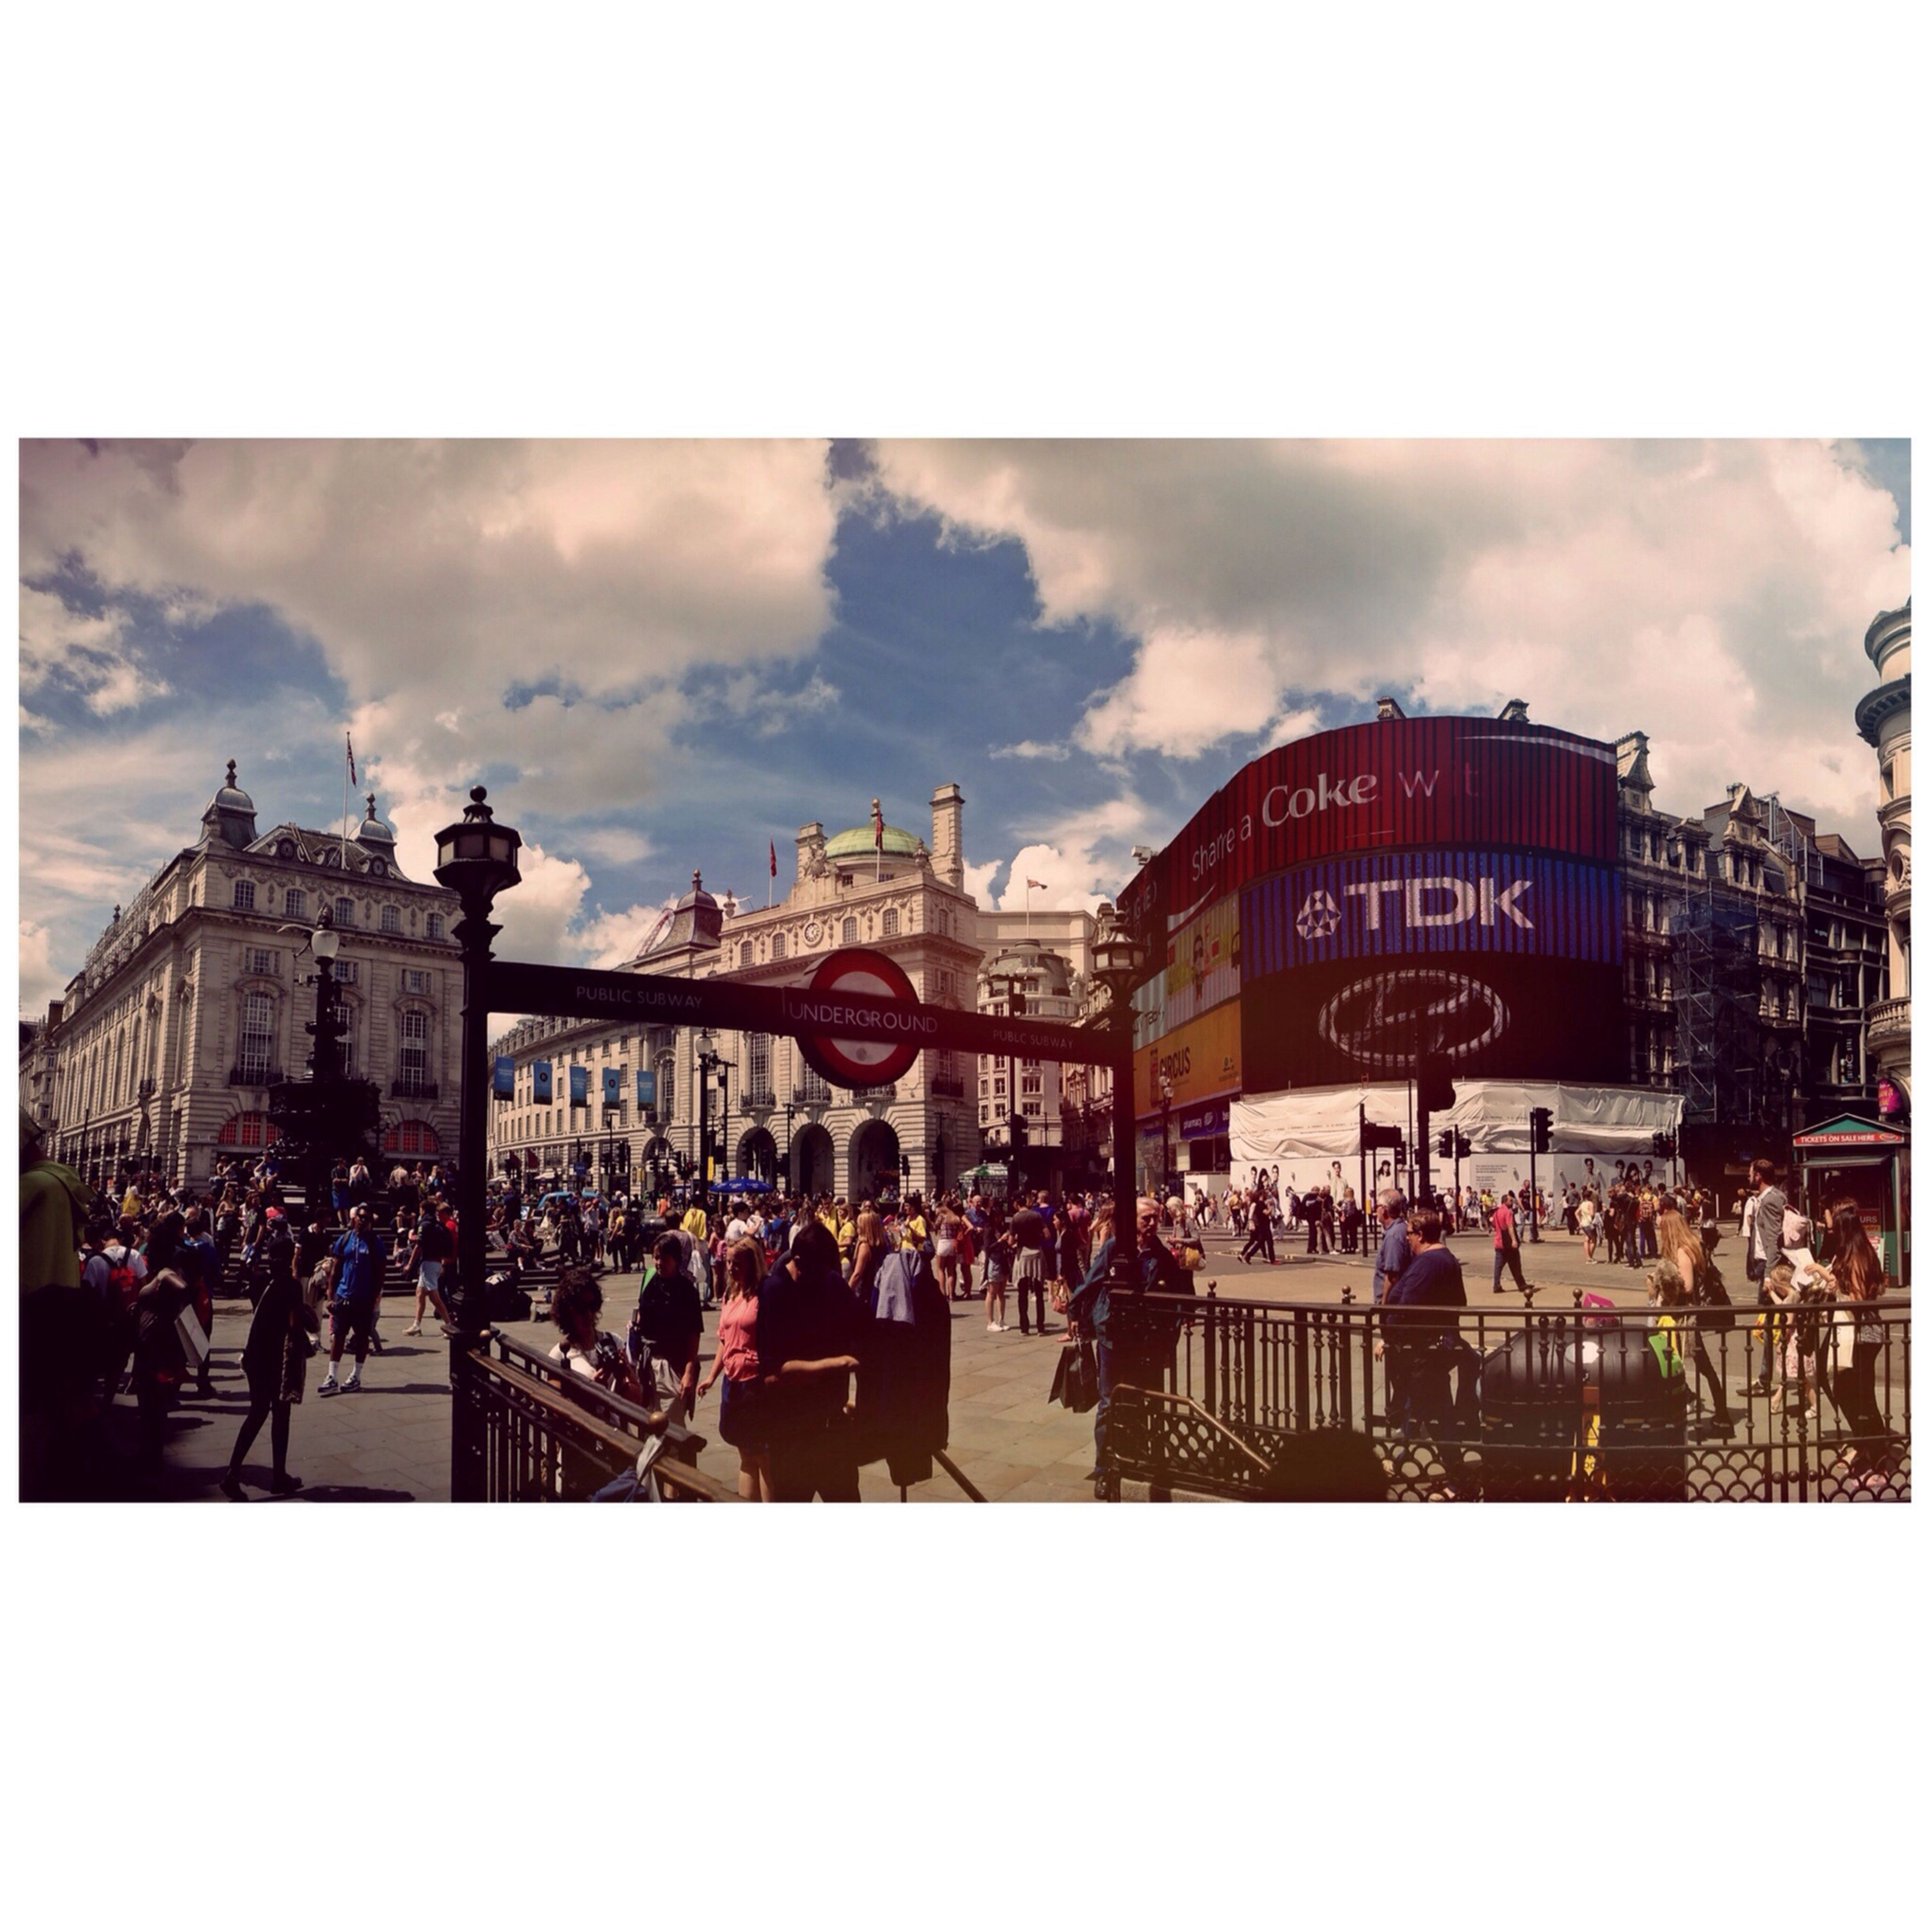 transfer print, architecture, building exterior, built structure, auto post production filter, large group of people, sky, city, person, men, cloud - sky, city life, mixed age range, lifestyles, cloud, town square, panoramic, outdoors, day